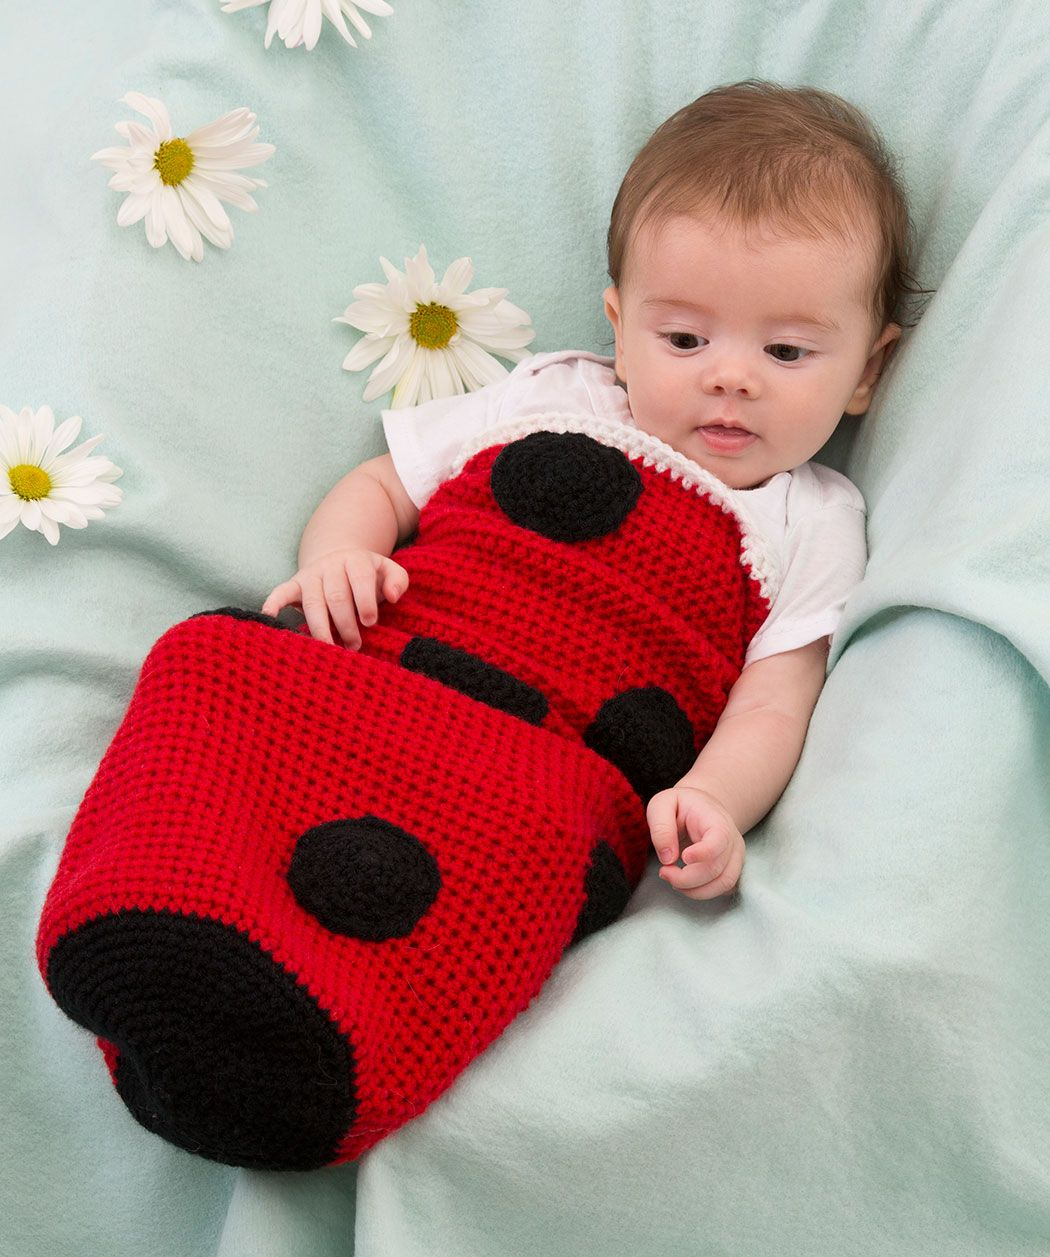 Ladybug baby cocoon crochet pattern crochet annegeddes ladybug baby cocoon free crochet pattern from red heart yarns bankloansurffo Choice Image